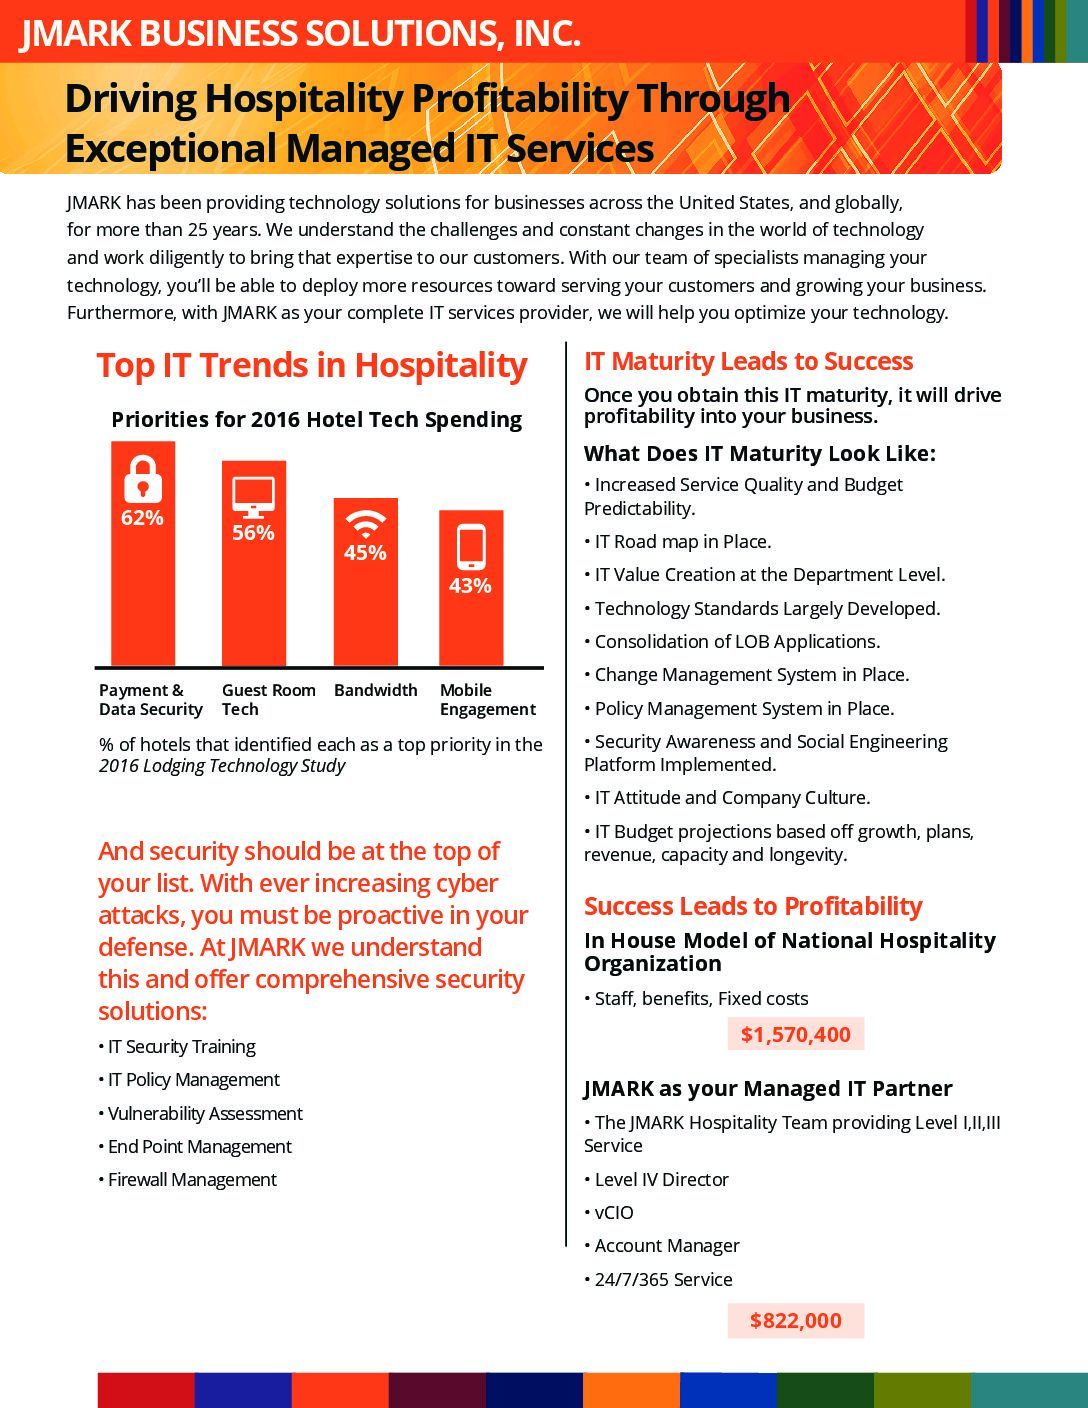 Hospitality IT support for the Hospitality industry